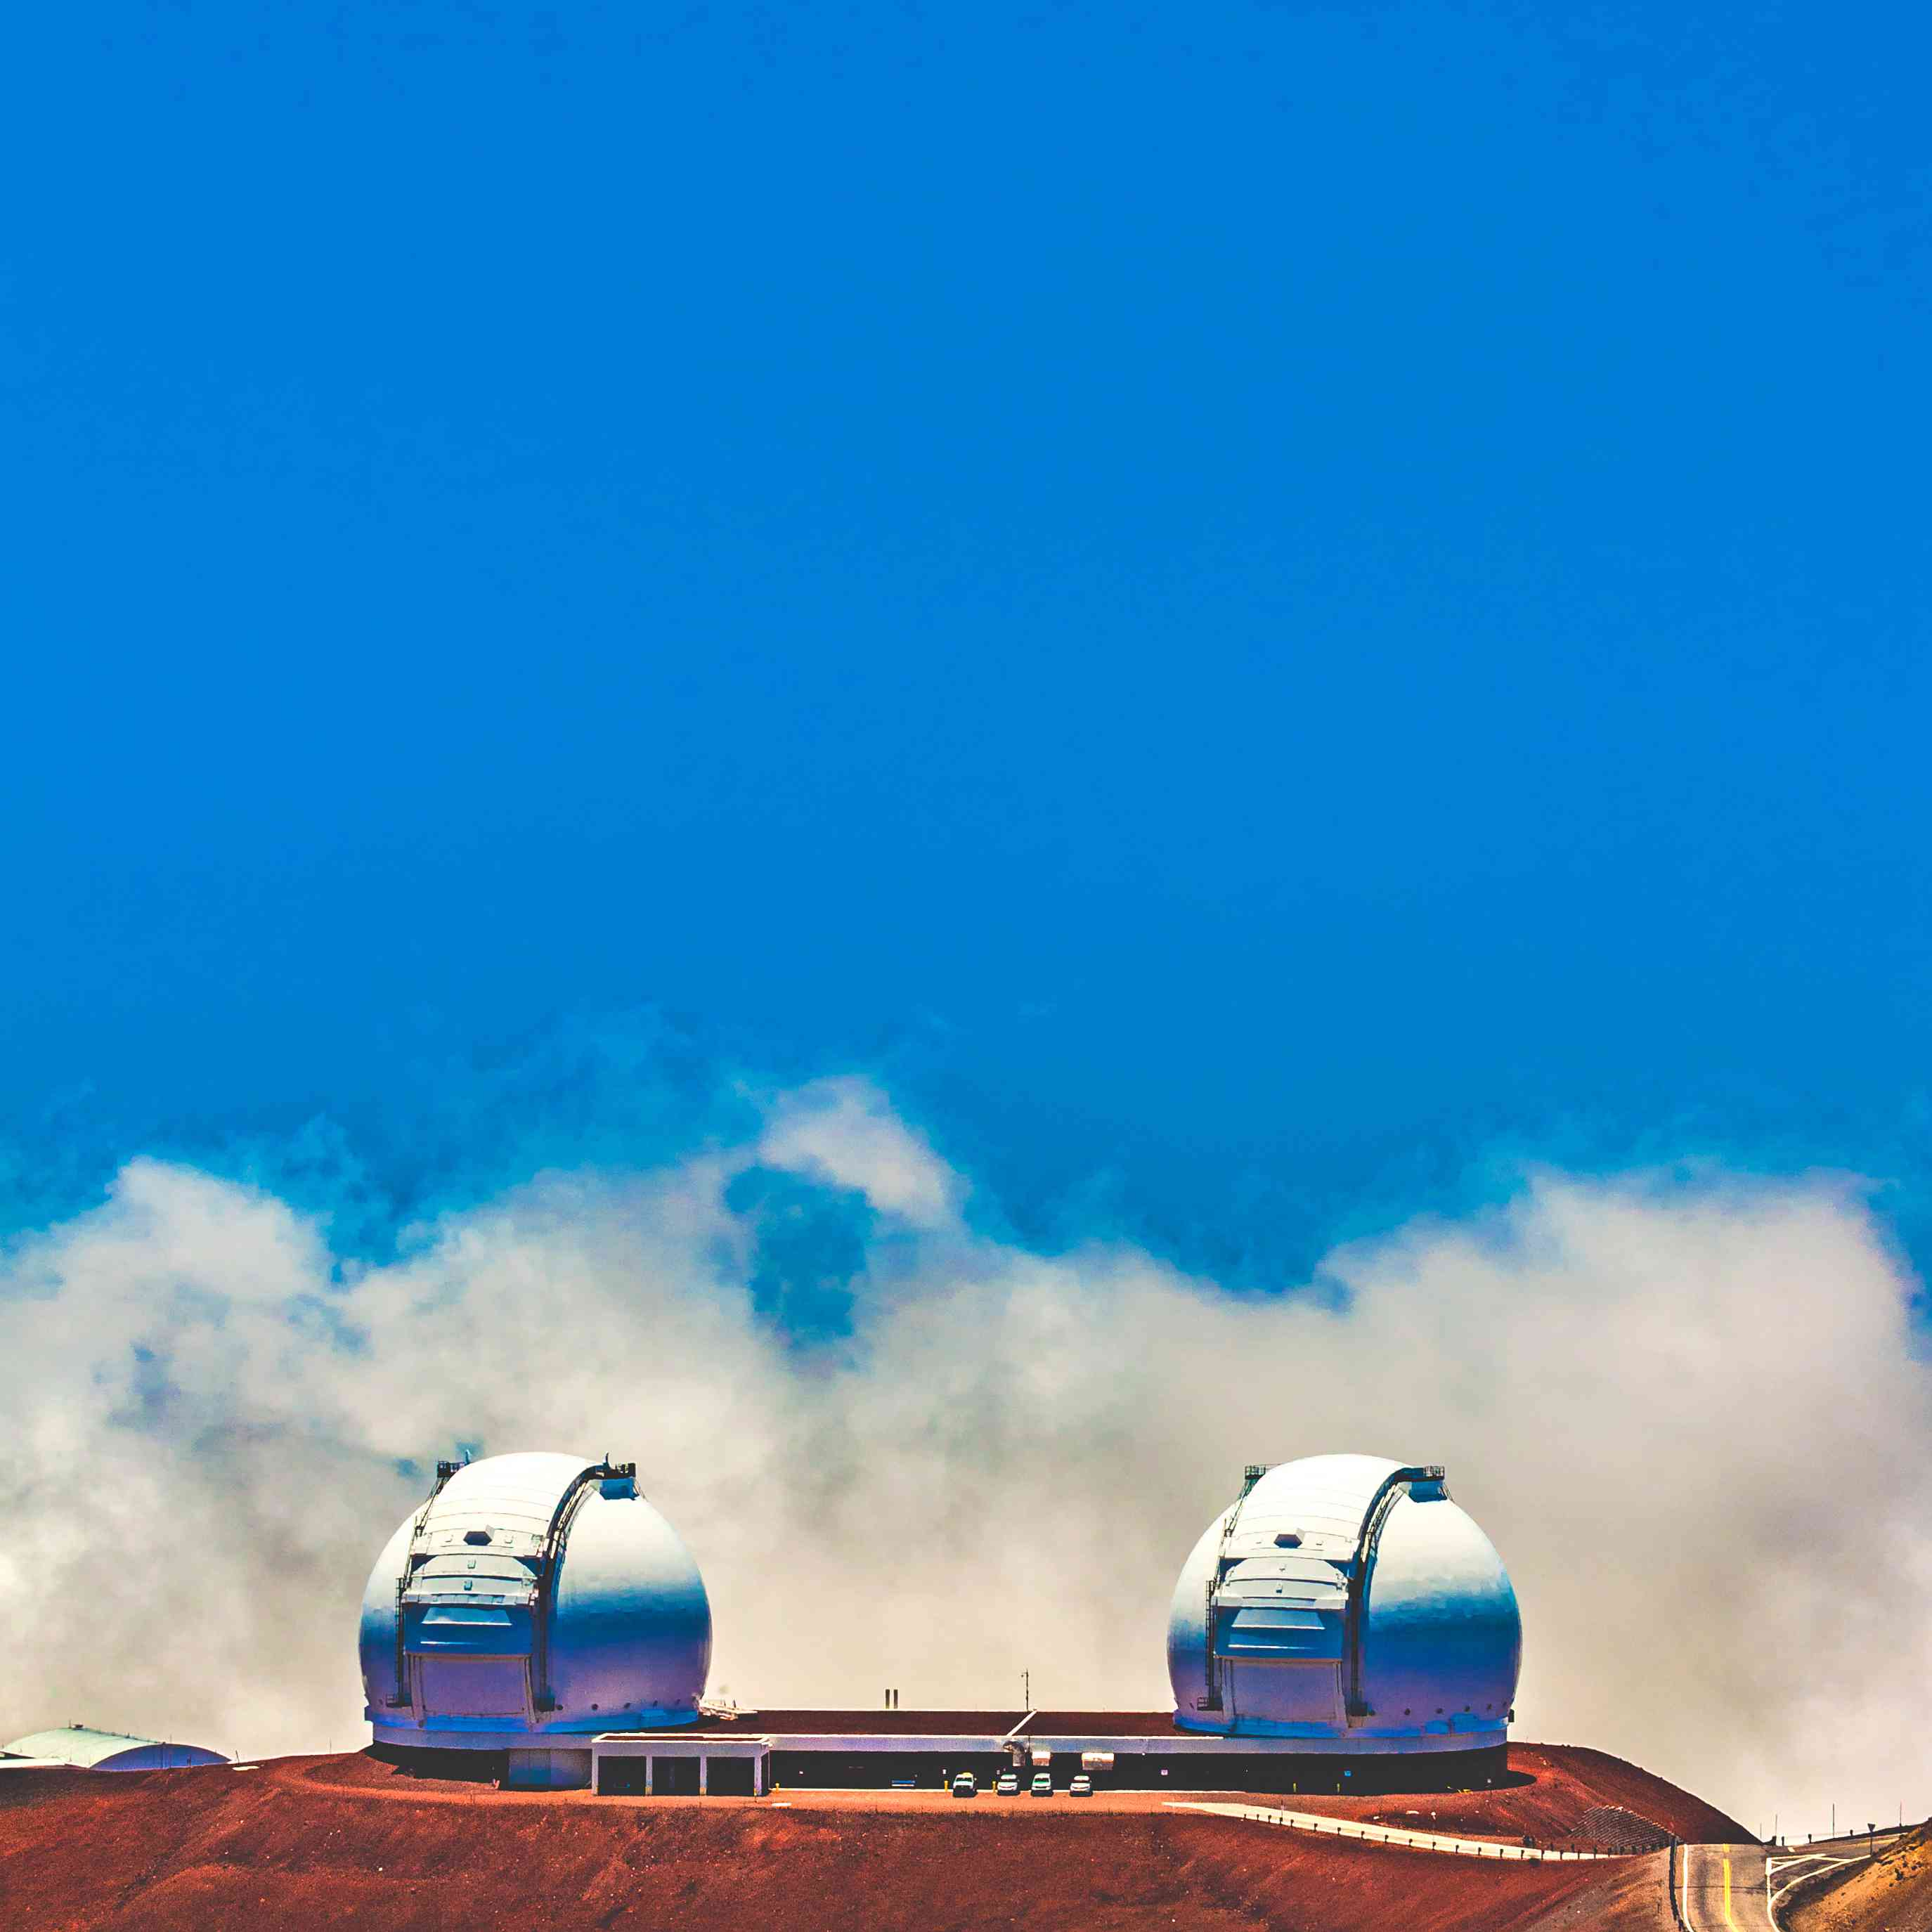 The twin telescopes of the Keck Observatory in Hawaii